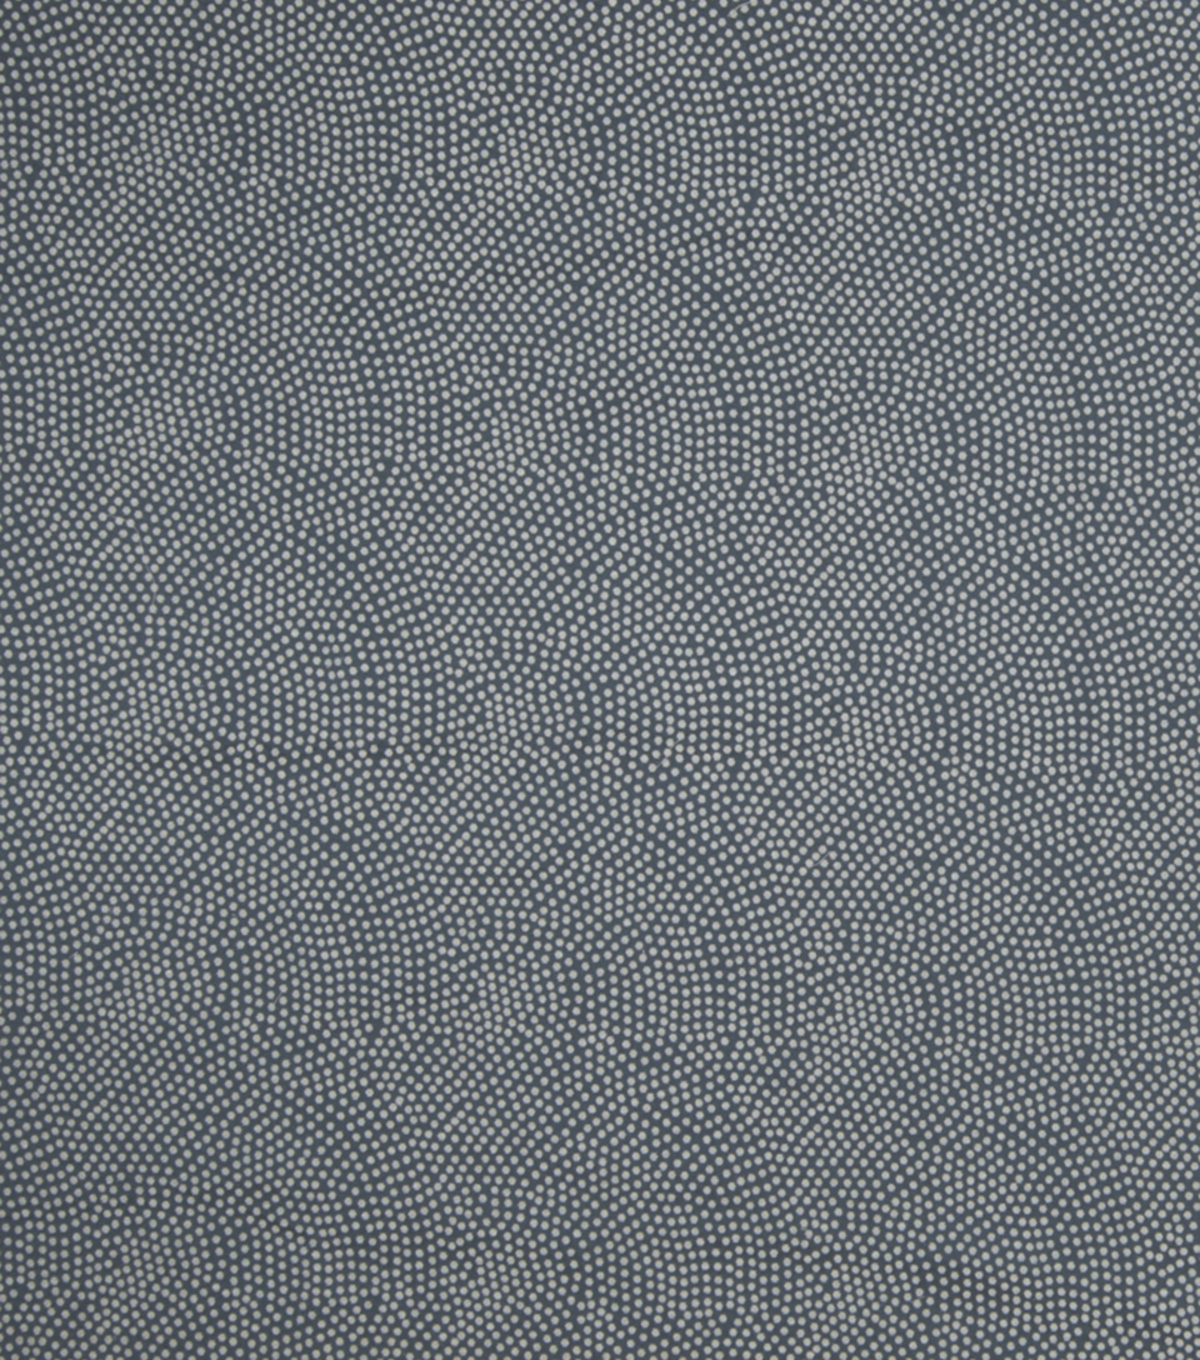 Home Decor 8\u0022x8\u0022 Fabric Swatch-Upholstery Fabric Eaton Square Buffet Indigo